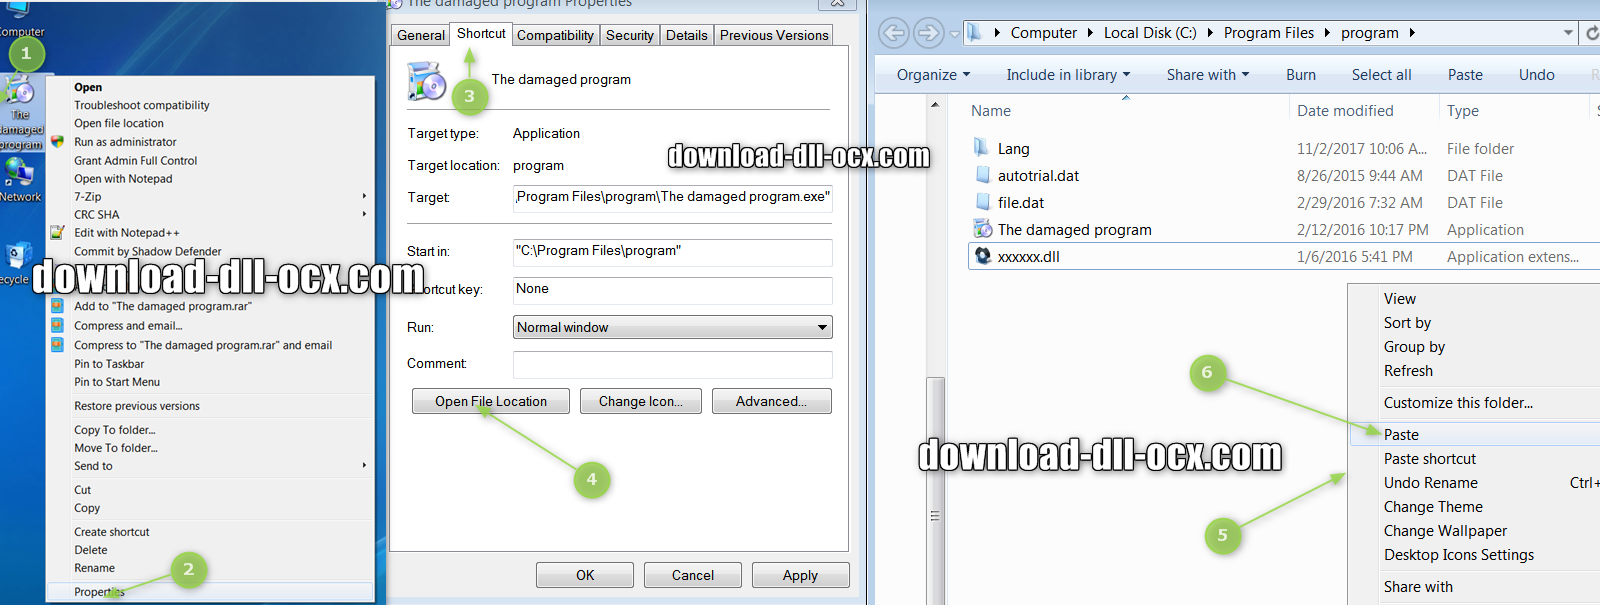 how to install libgimpwidgets-2.0-0.dll file? for fix missing